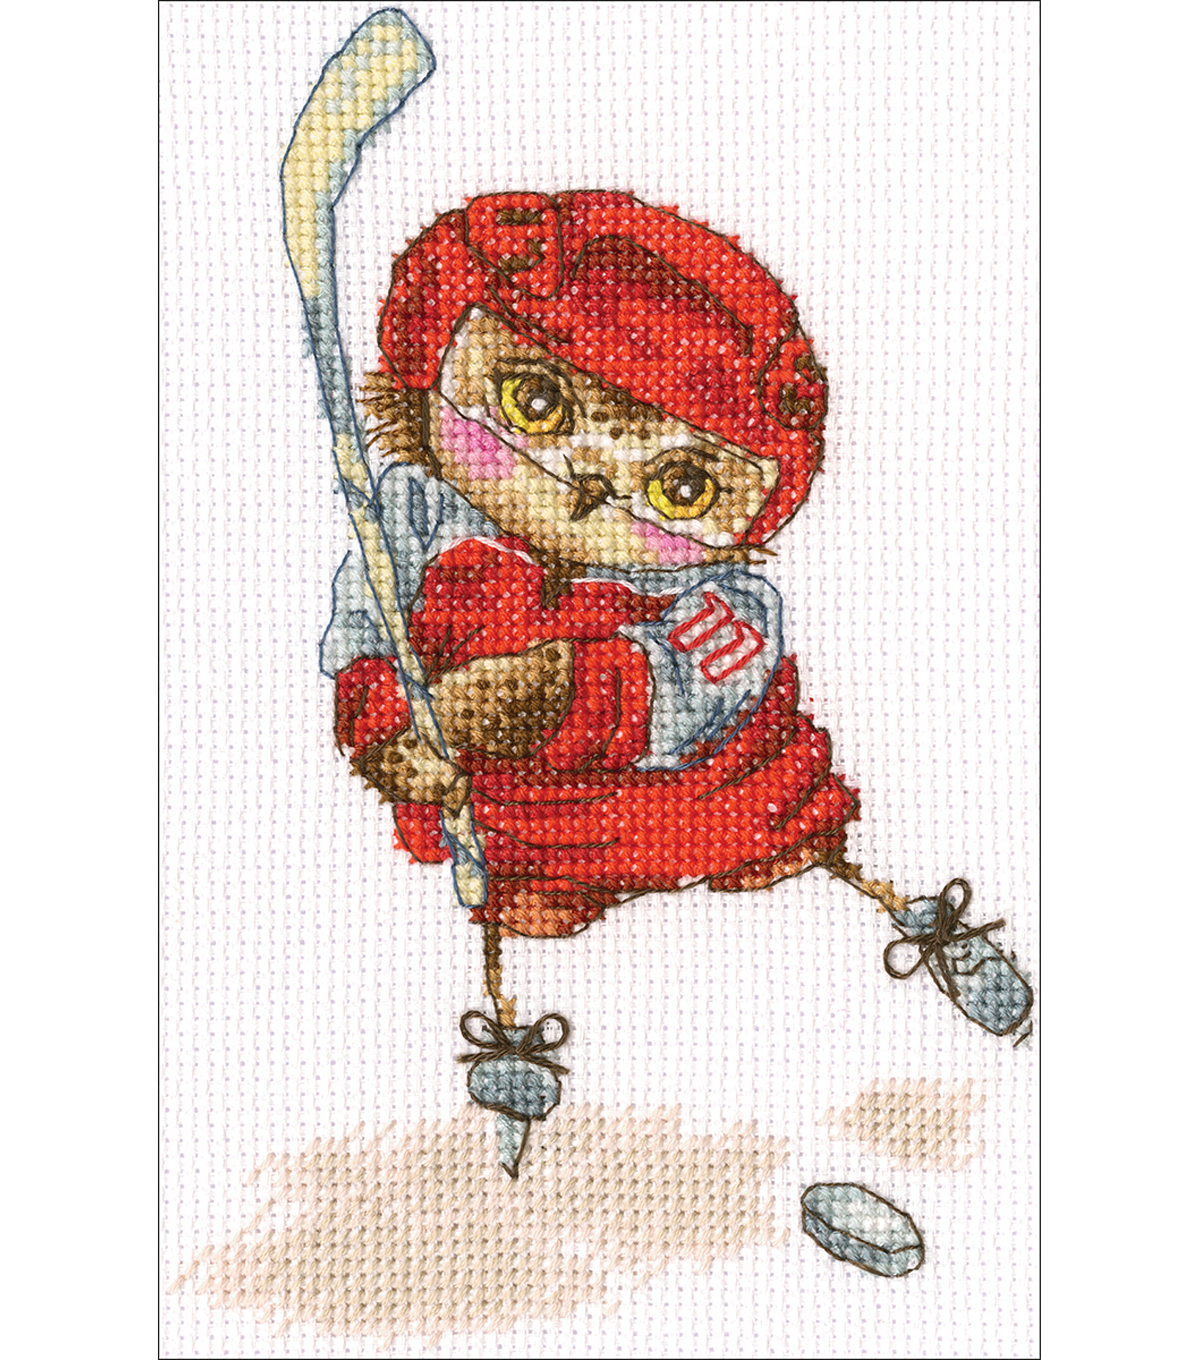 RTO 6\u0027\u0027x6.29\u0027\u0027 Counted Cross Stitch Kit-Shoot The Puck!